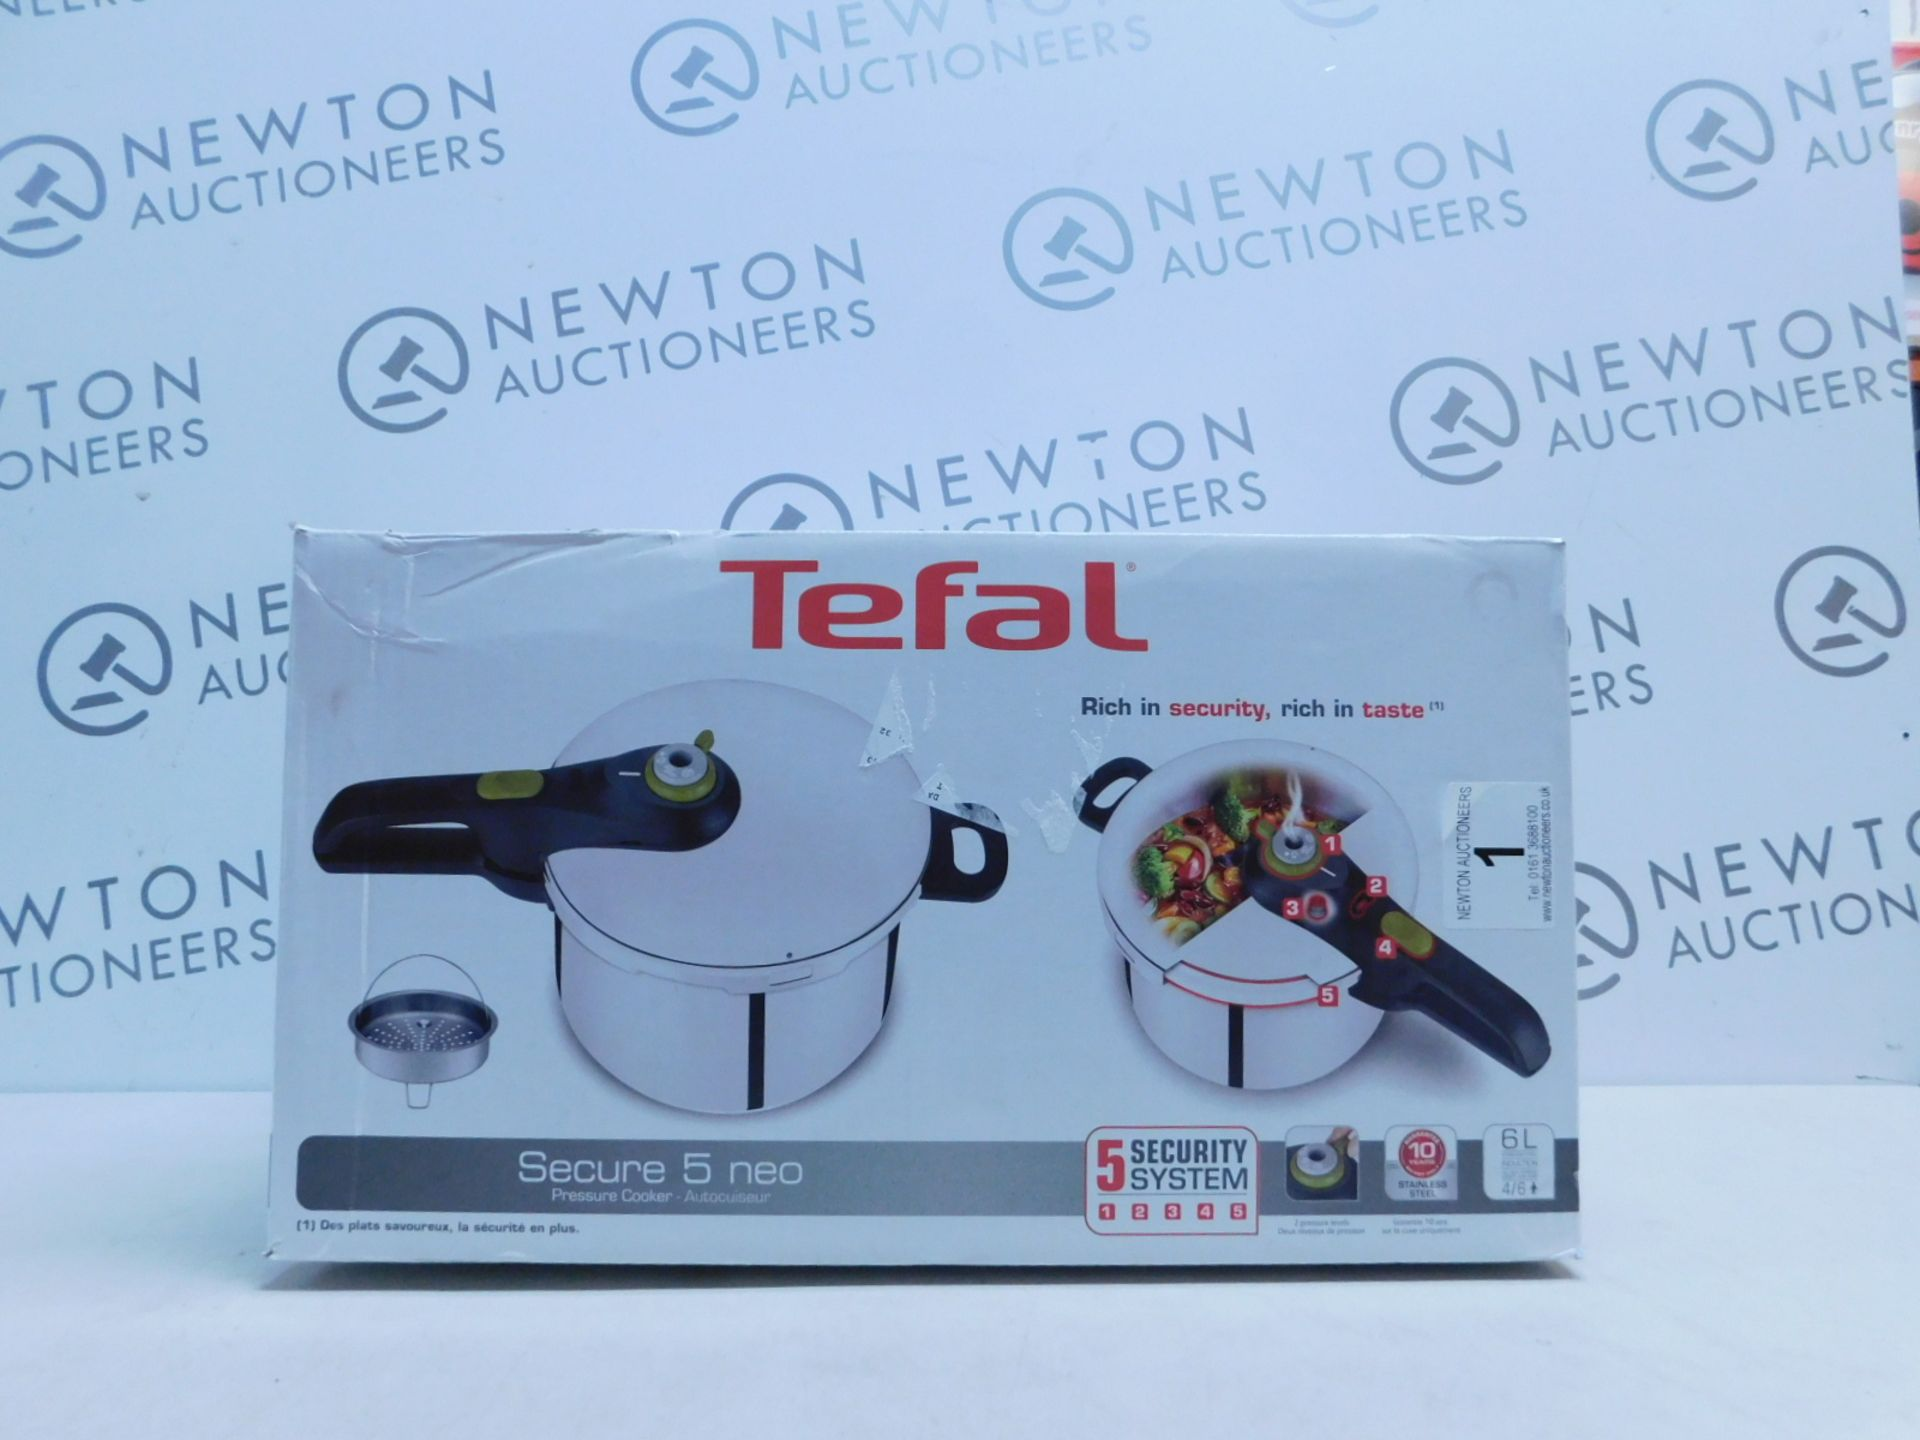 Lot 1 - 1 BOXED TEFAL SECURE 5 NEO STAINLESS STEEL 6L PRESSURE COOKER RRP £64.99